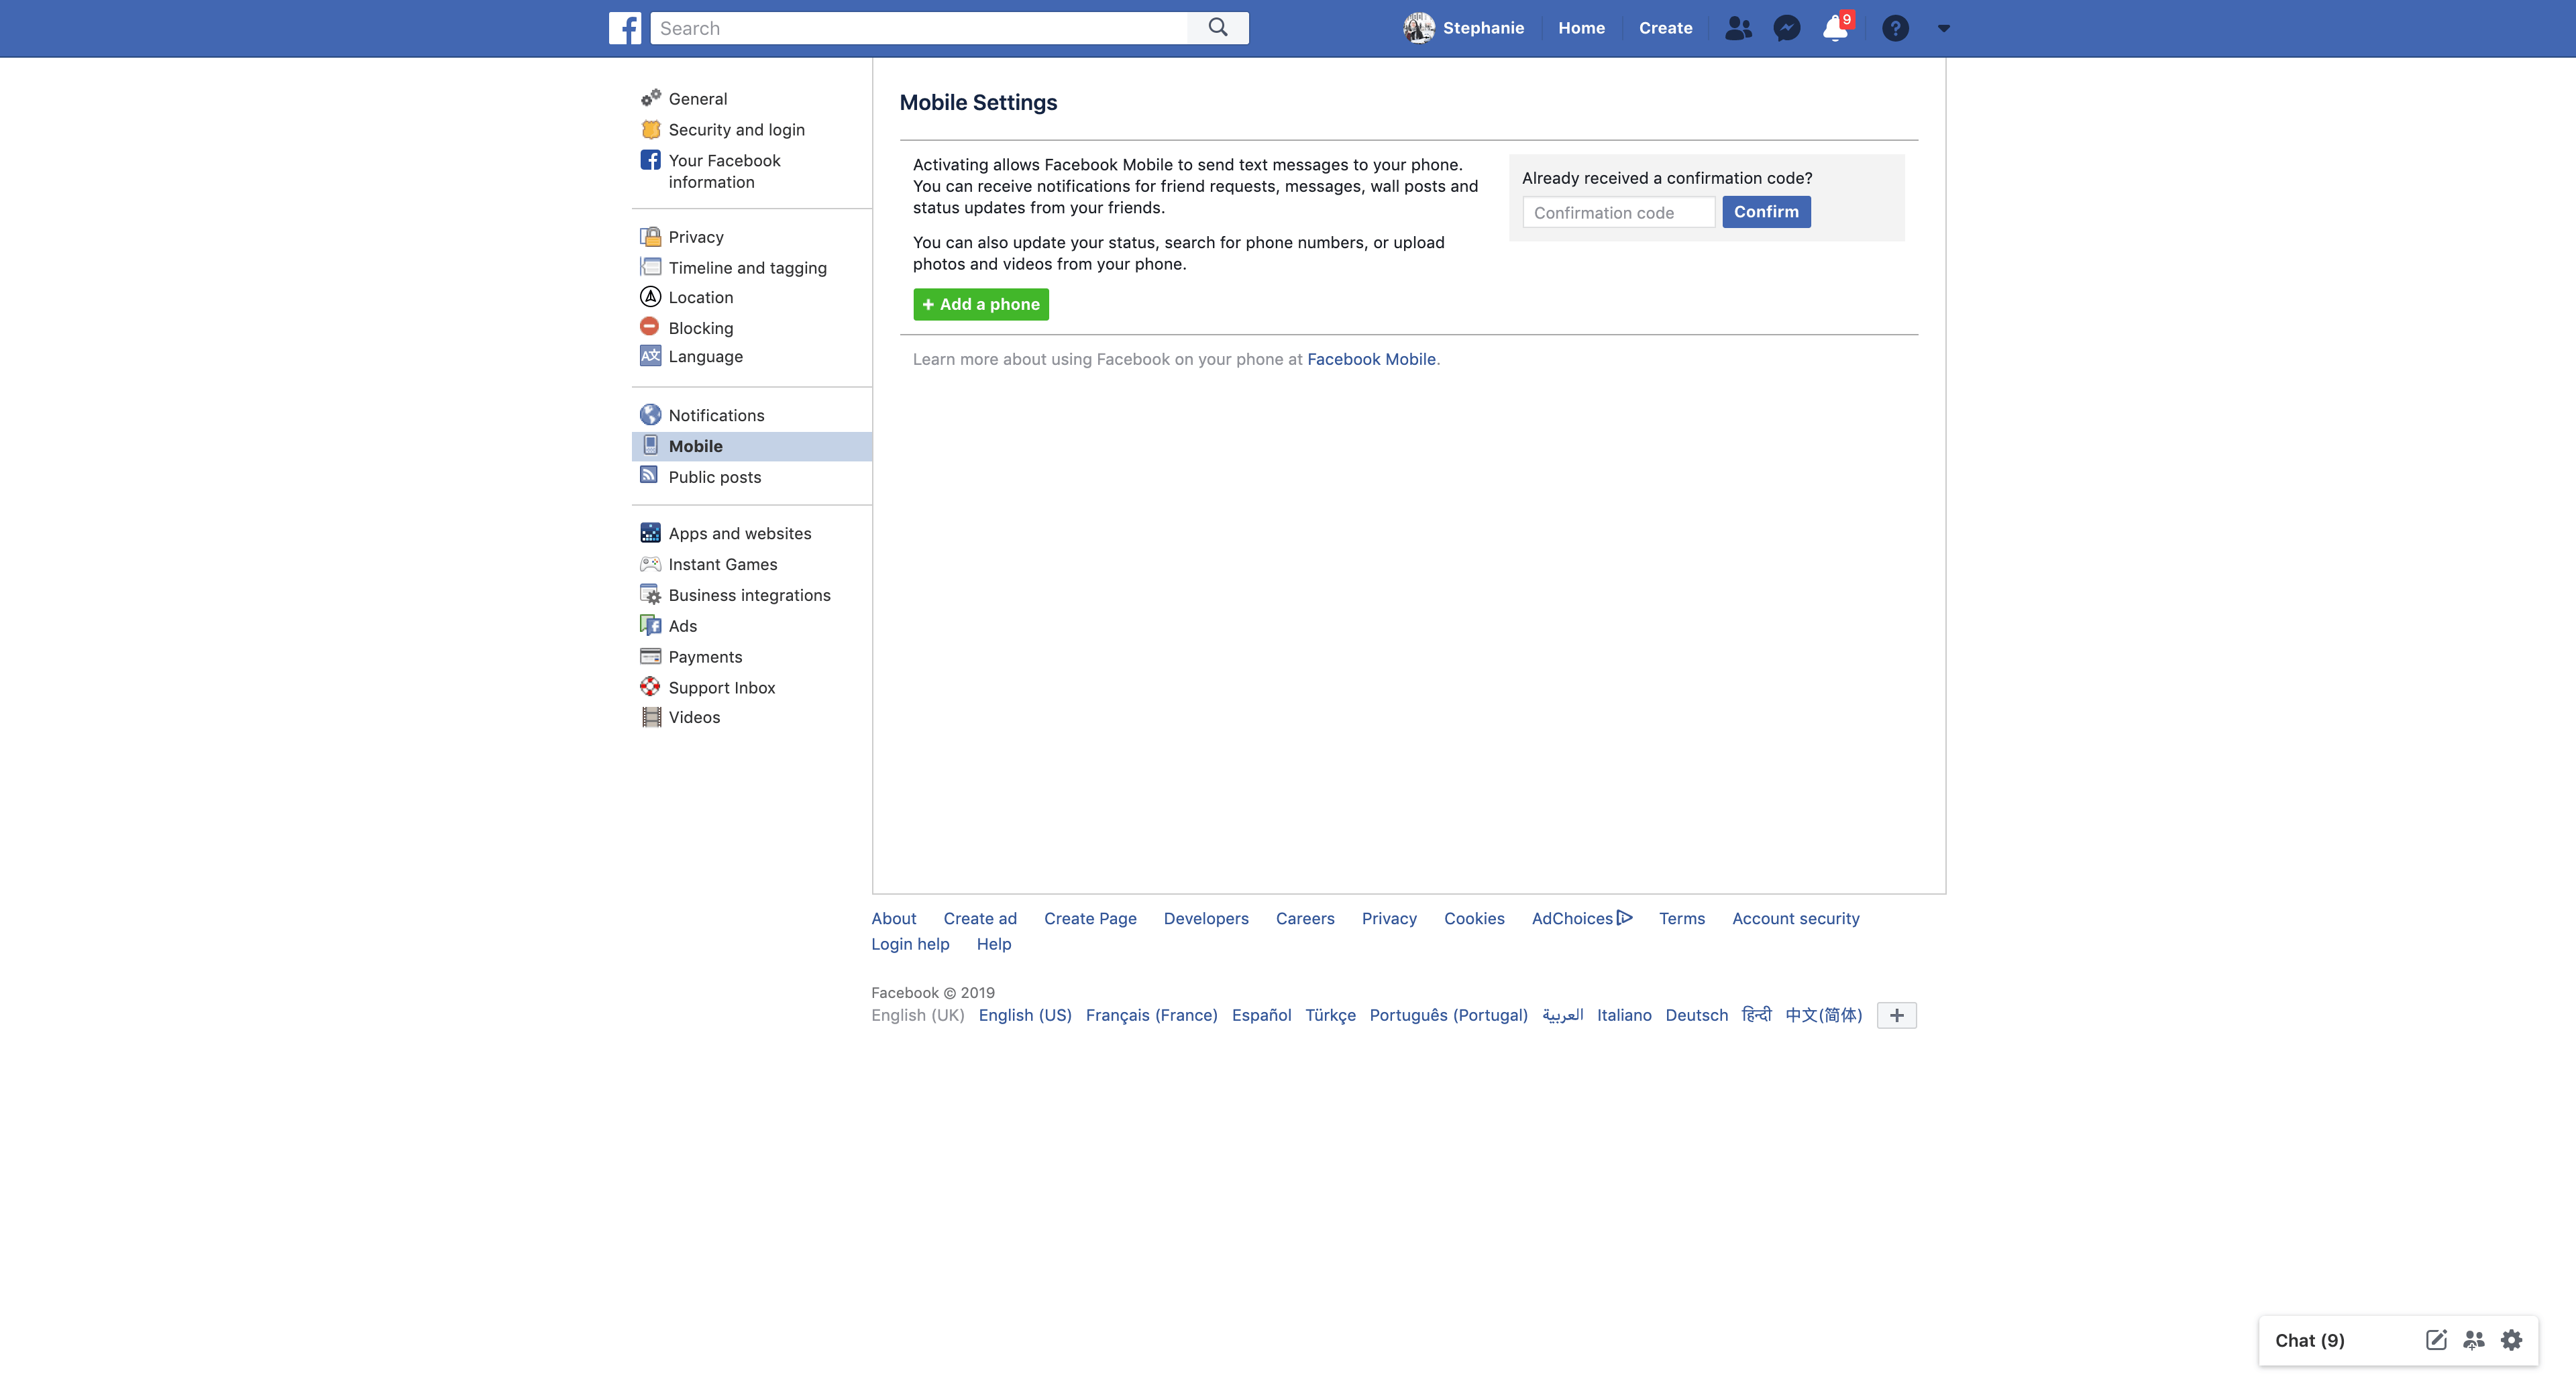 Mobile Settings by Facebook